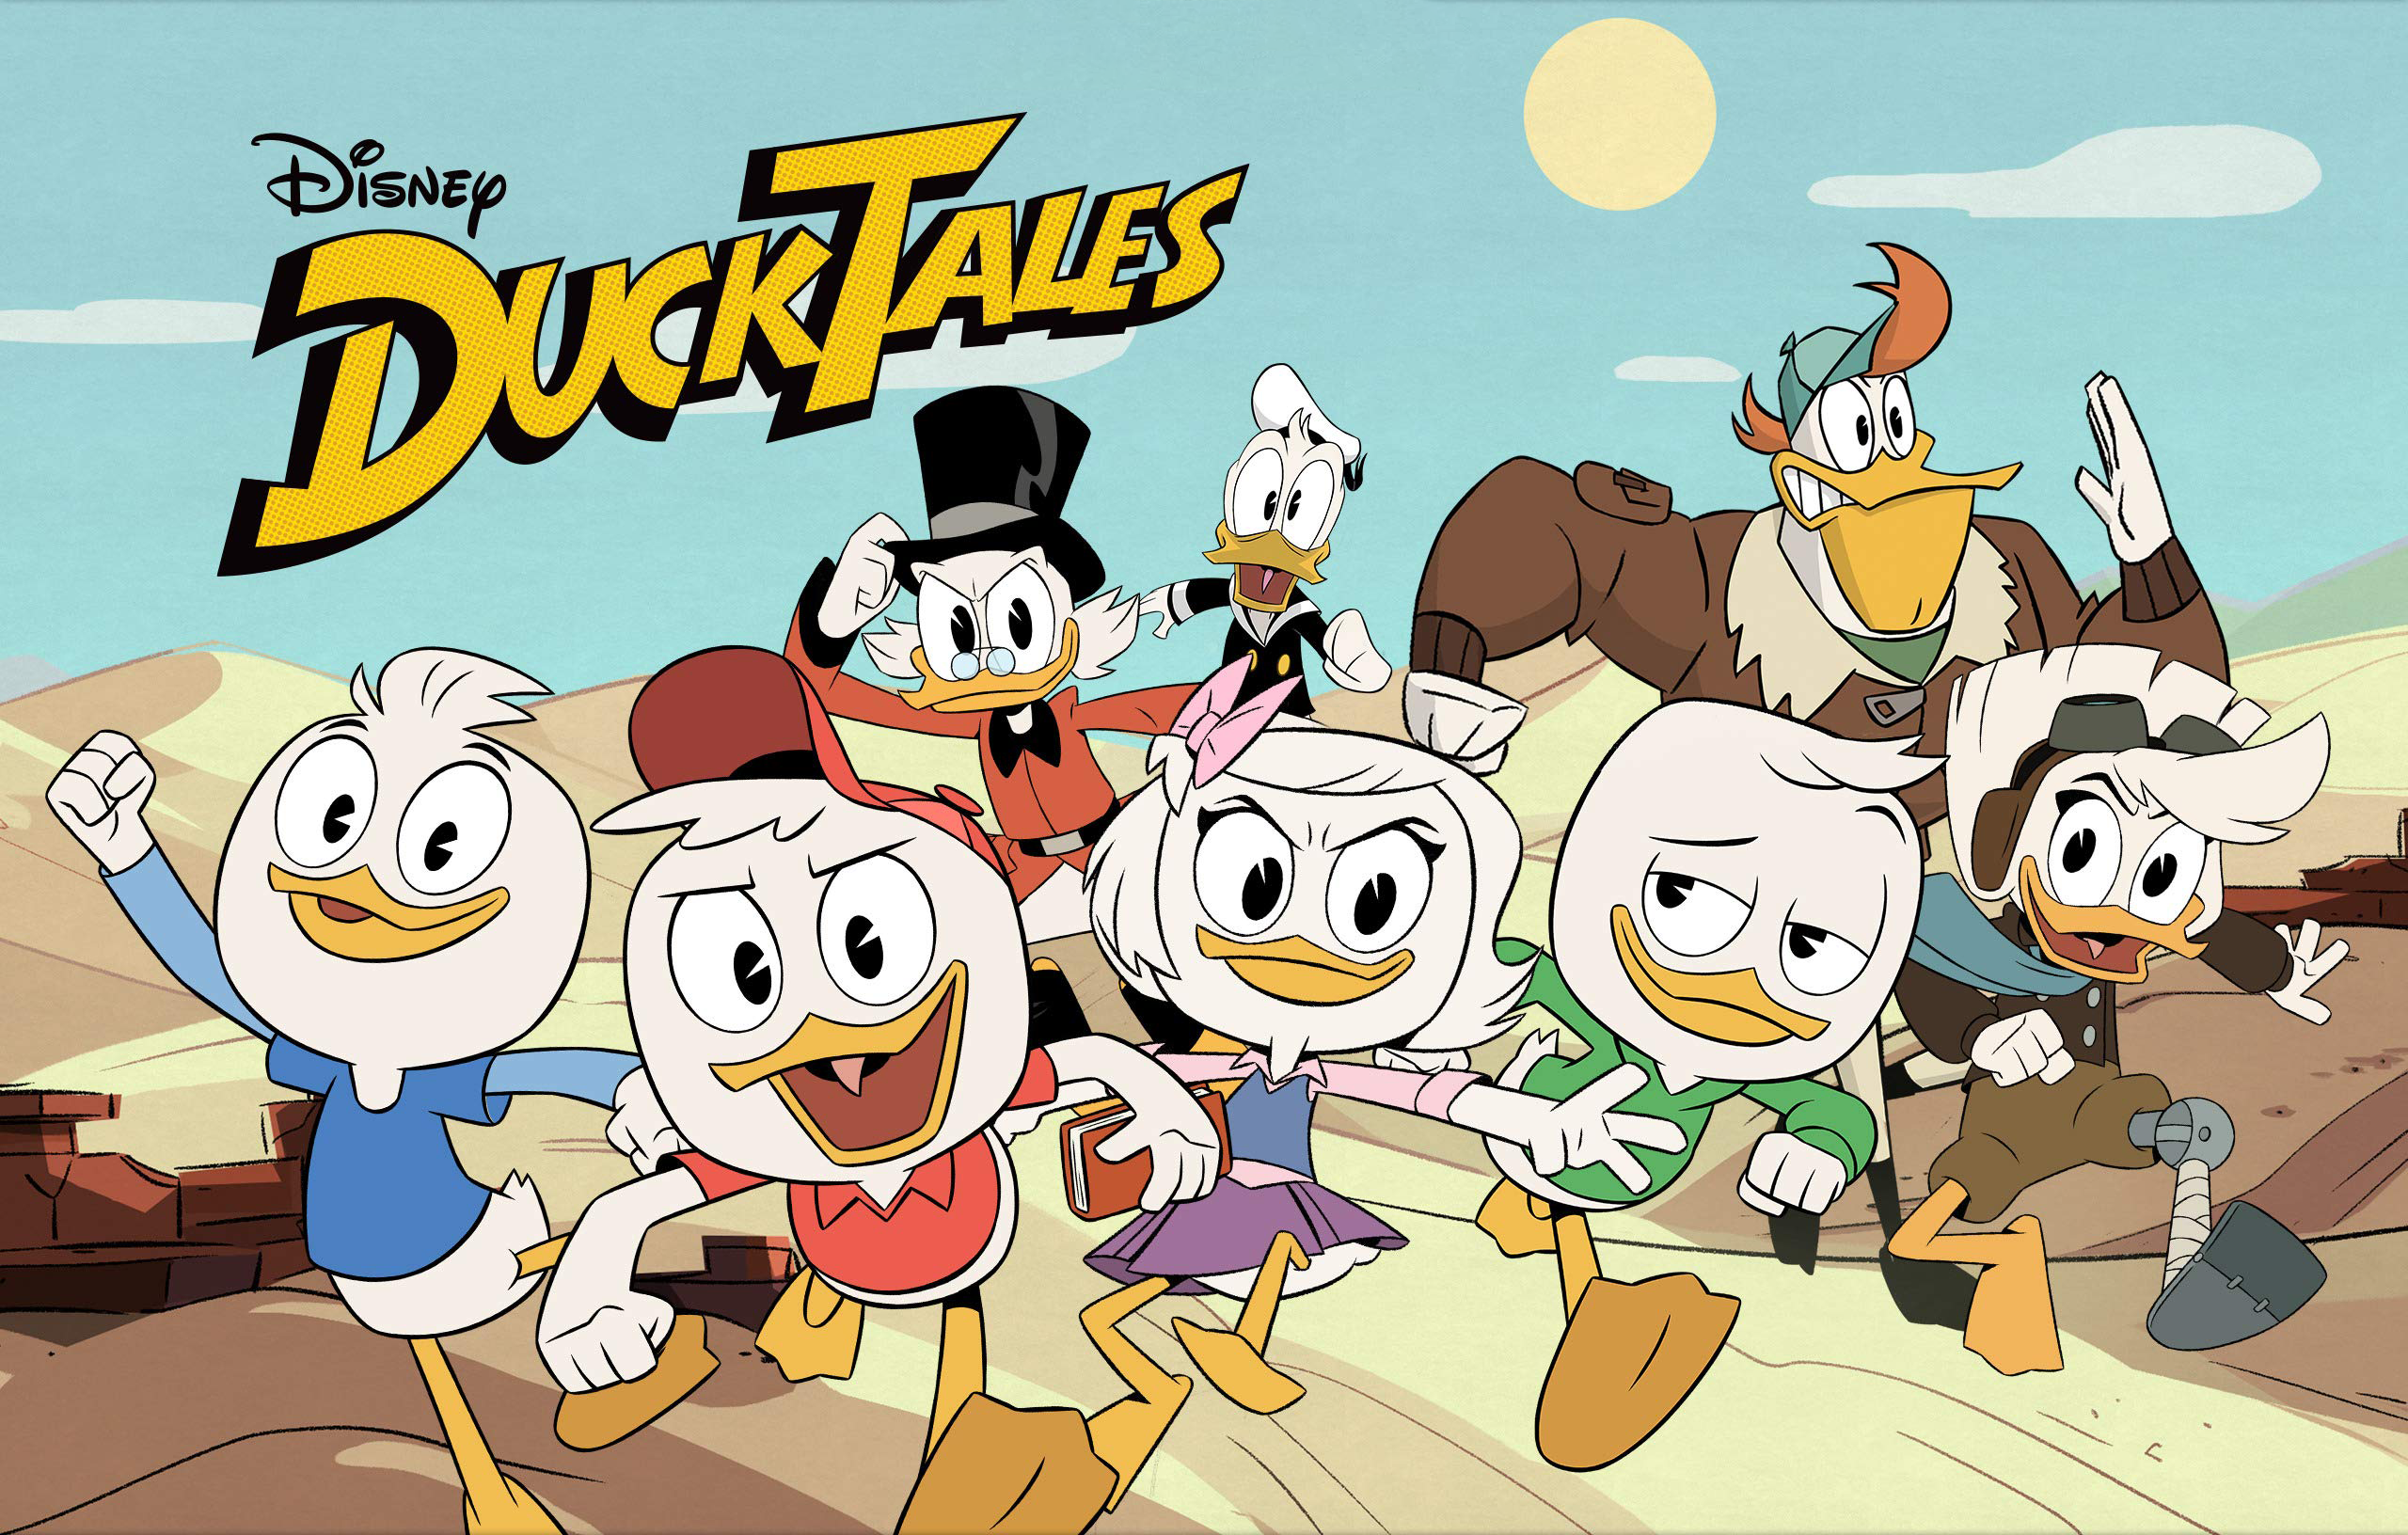 Preview And Recap: DuckTales (2017) Season 3 Episode 21